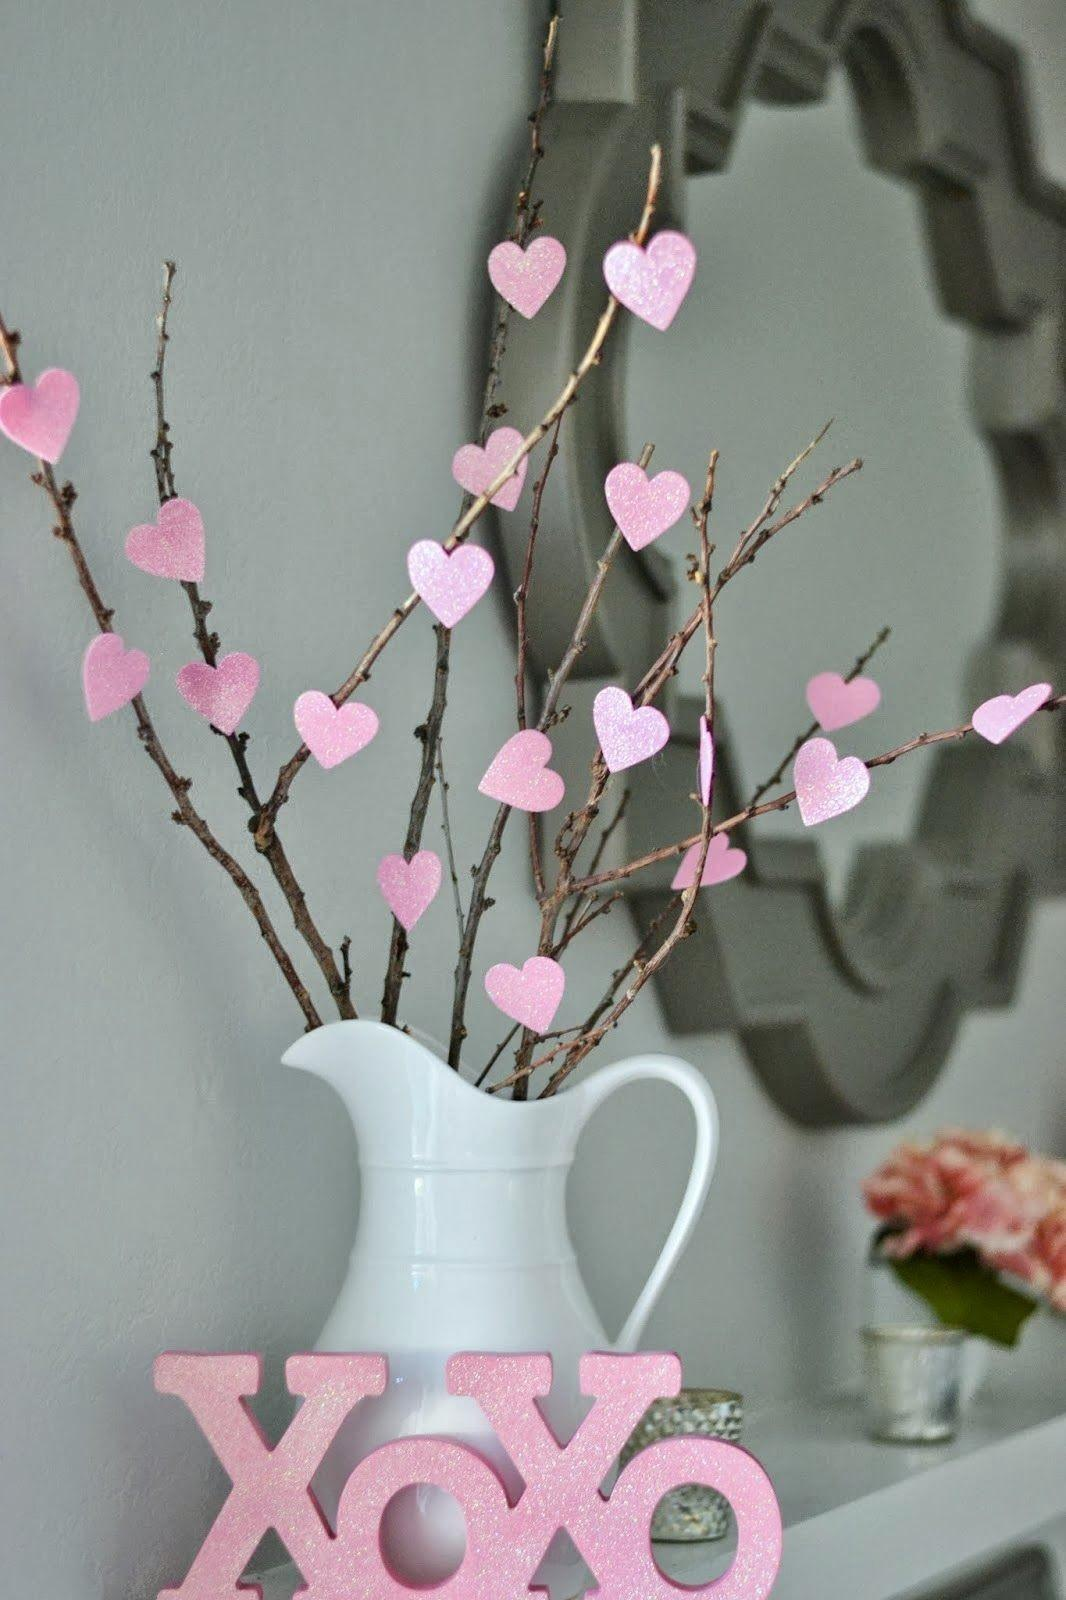 Made Love Diy Valentine Day Gifts Decor